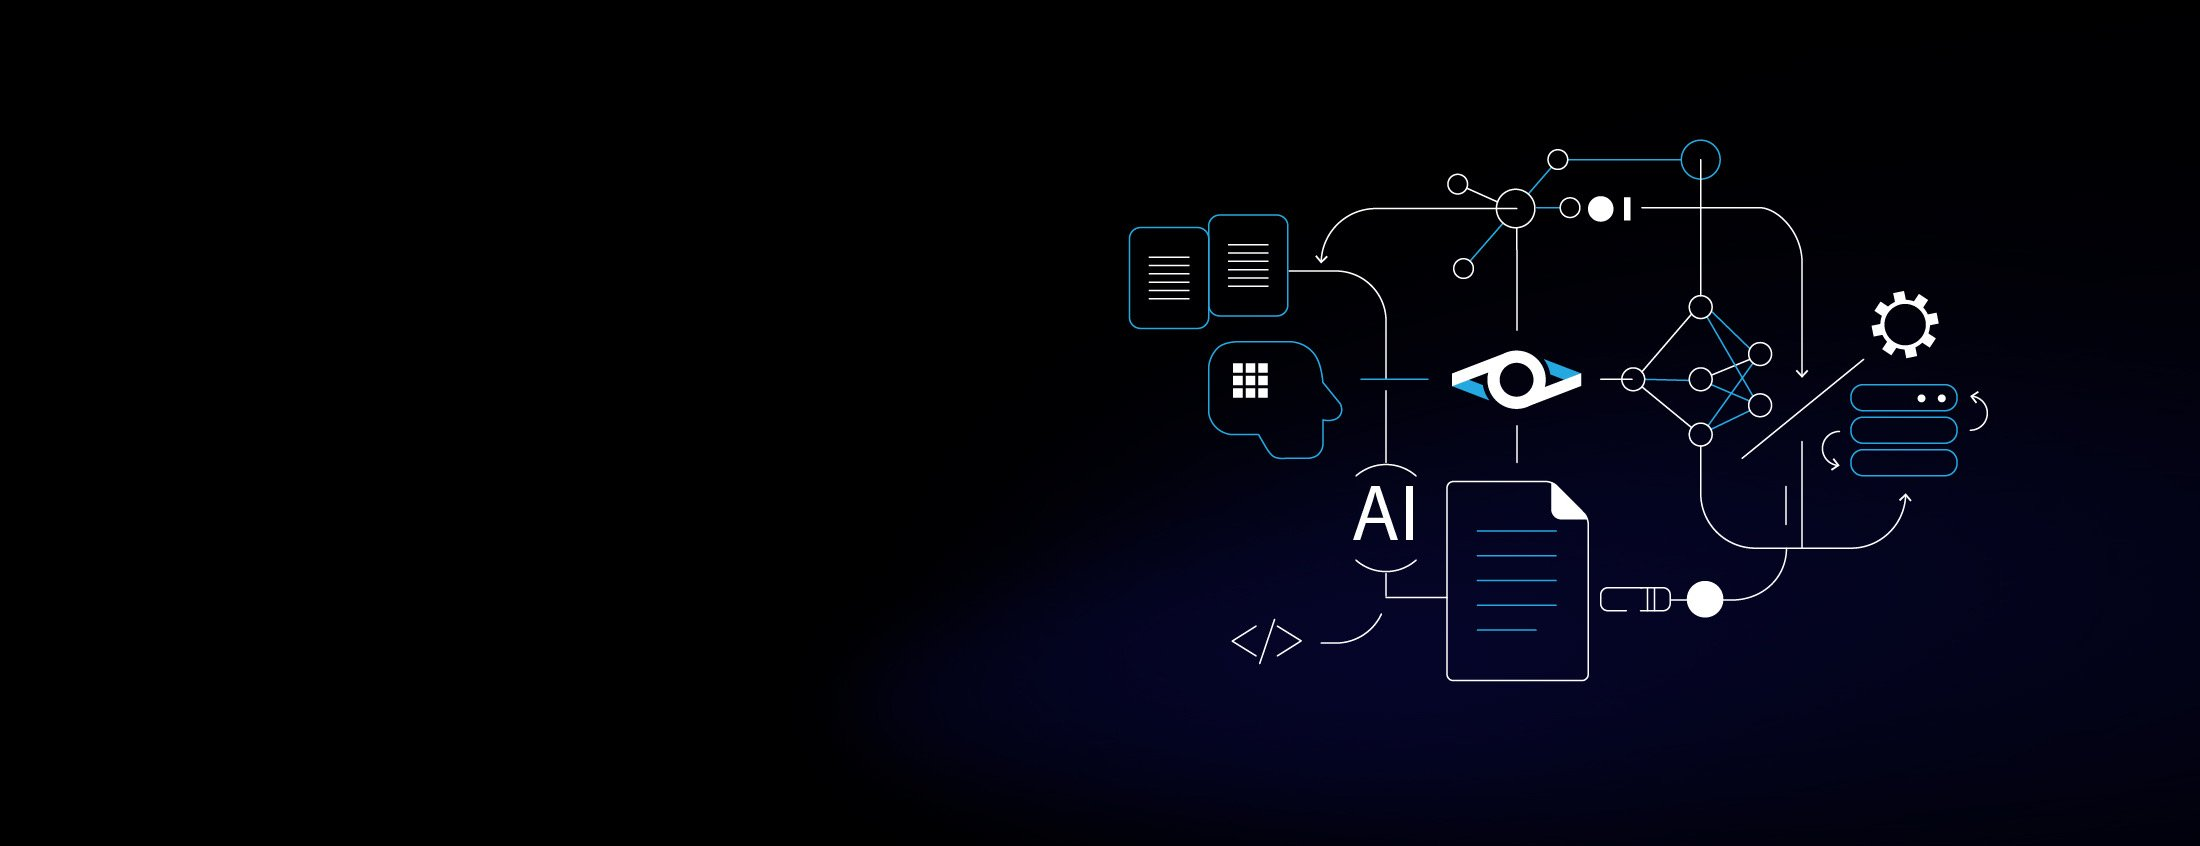 docBrain document centric AI made easy